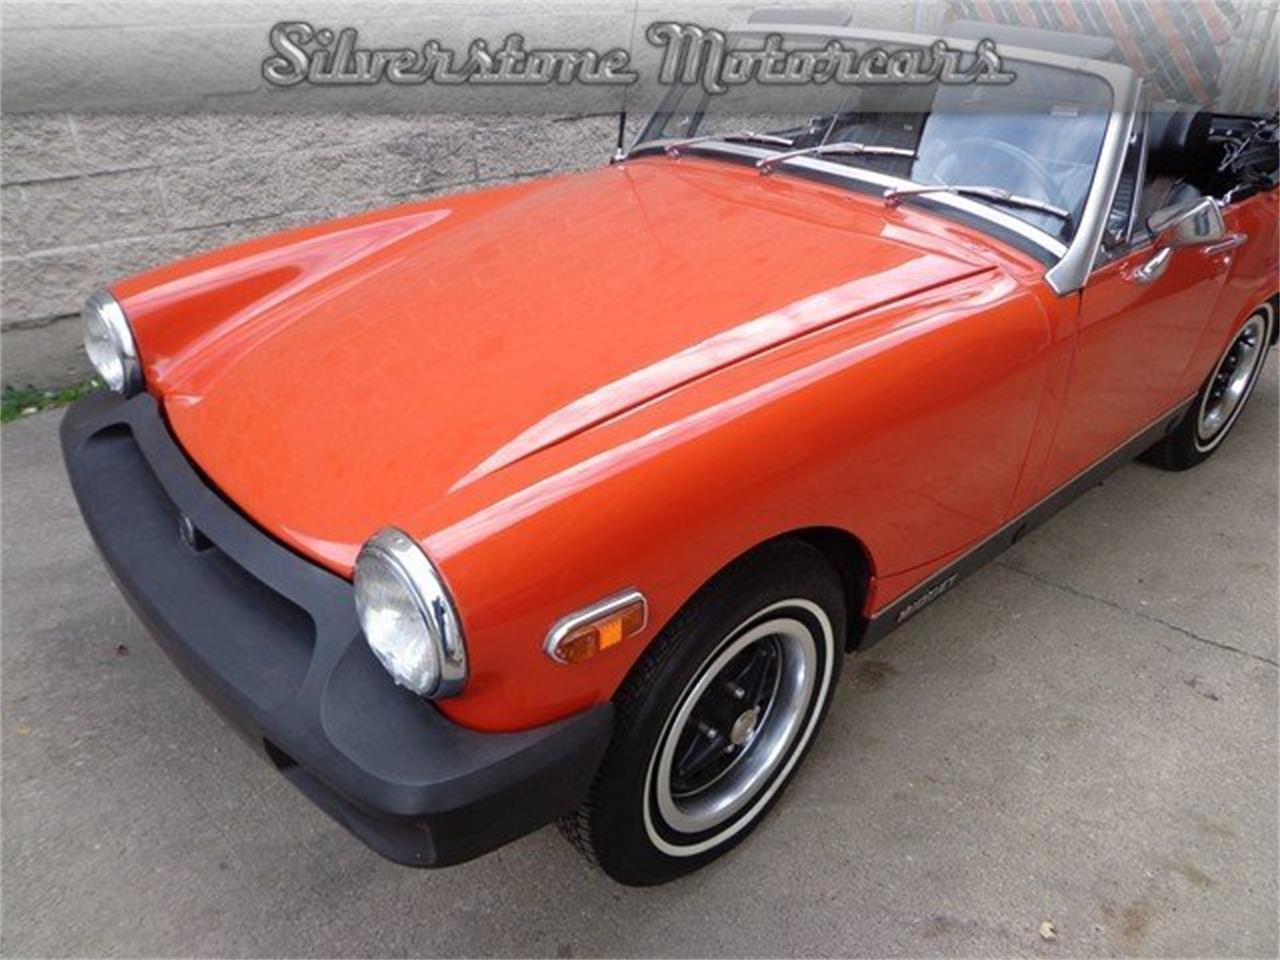 Large Picture of '76 MG Midget Offered by Silverstone Motorcars - F8K7